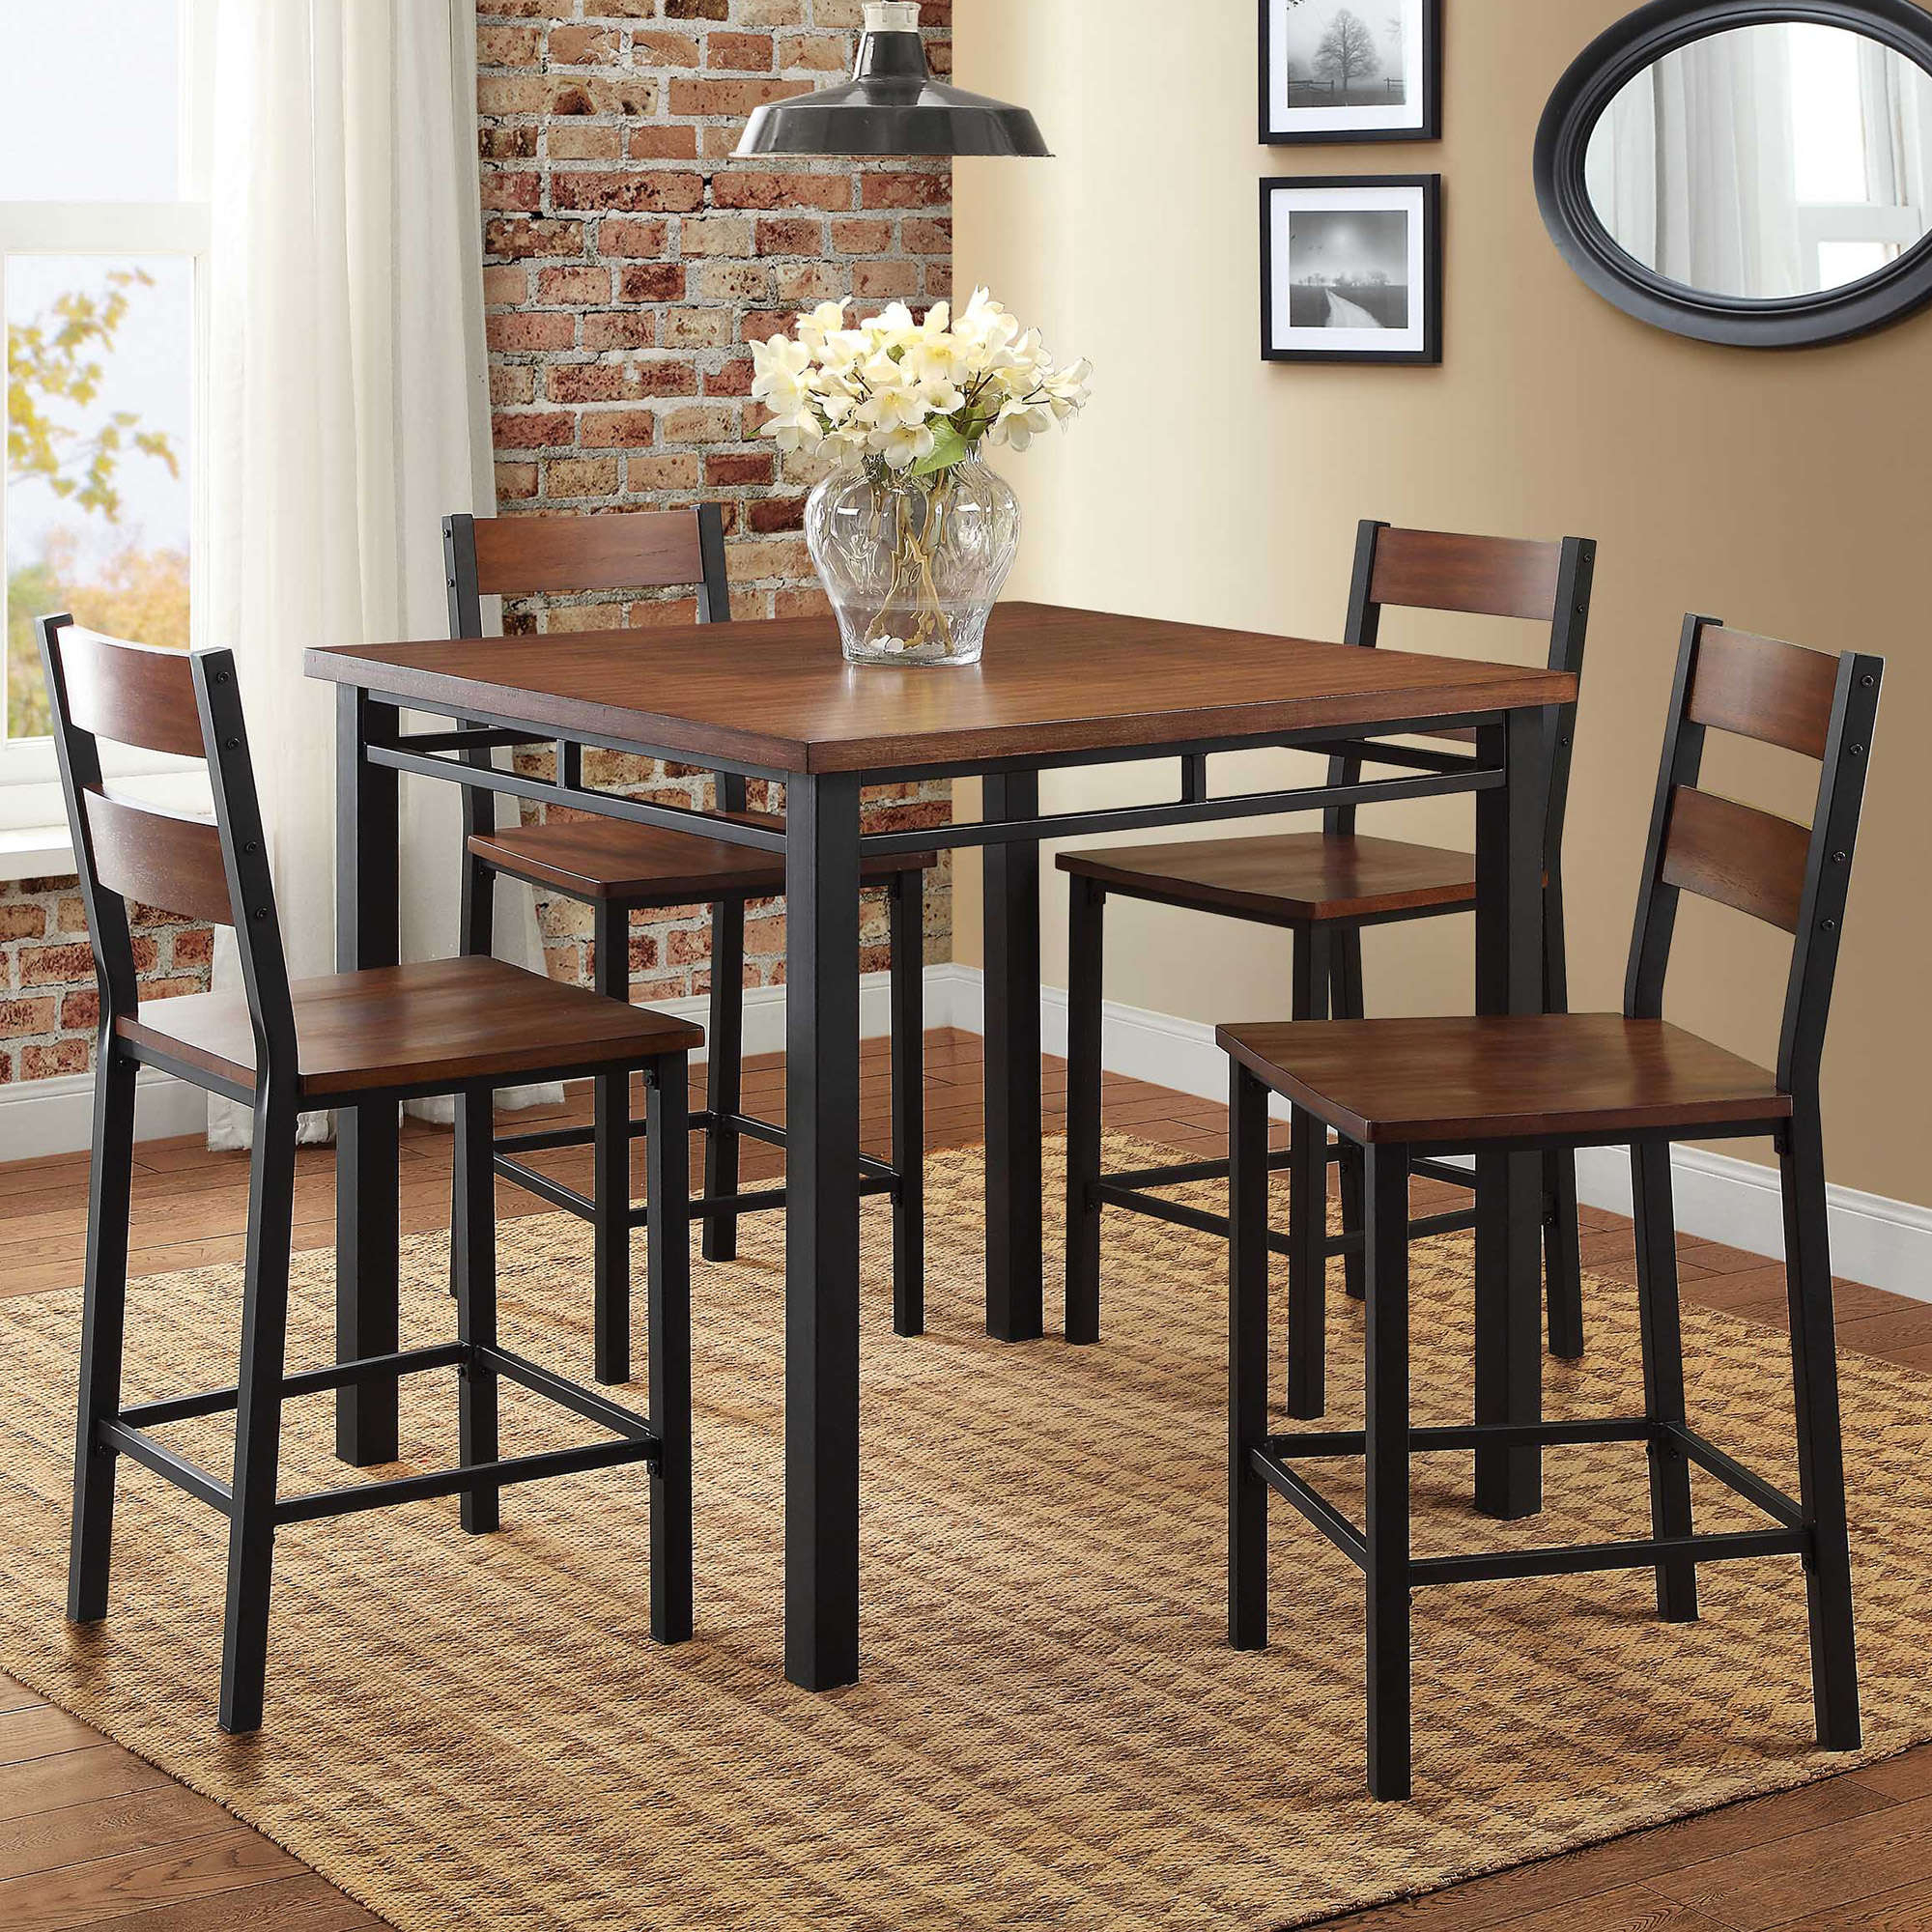 Kitchen & Dining Furniture – Walmart In Current Ligon 3 Piece Breakfast Nook Dining Sets (Gallery 12 of 20)